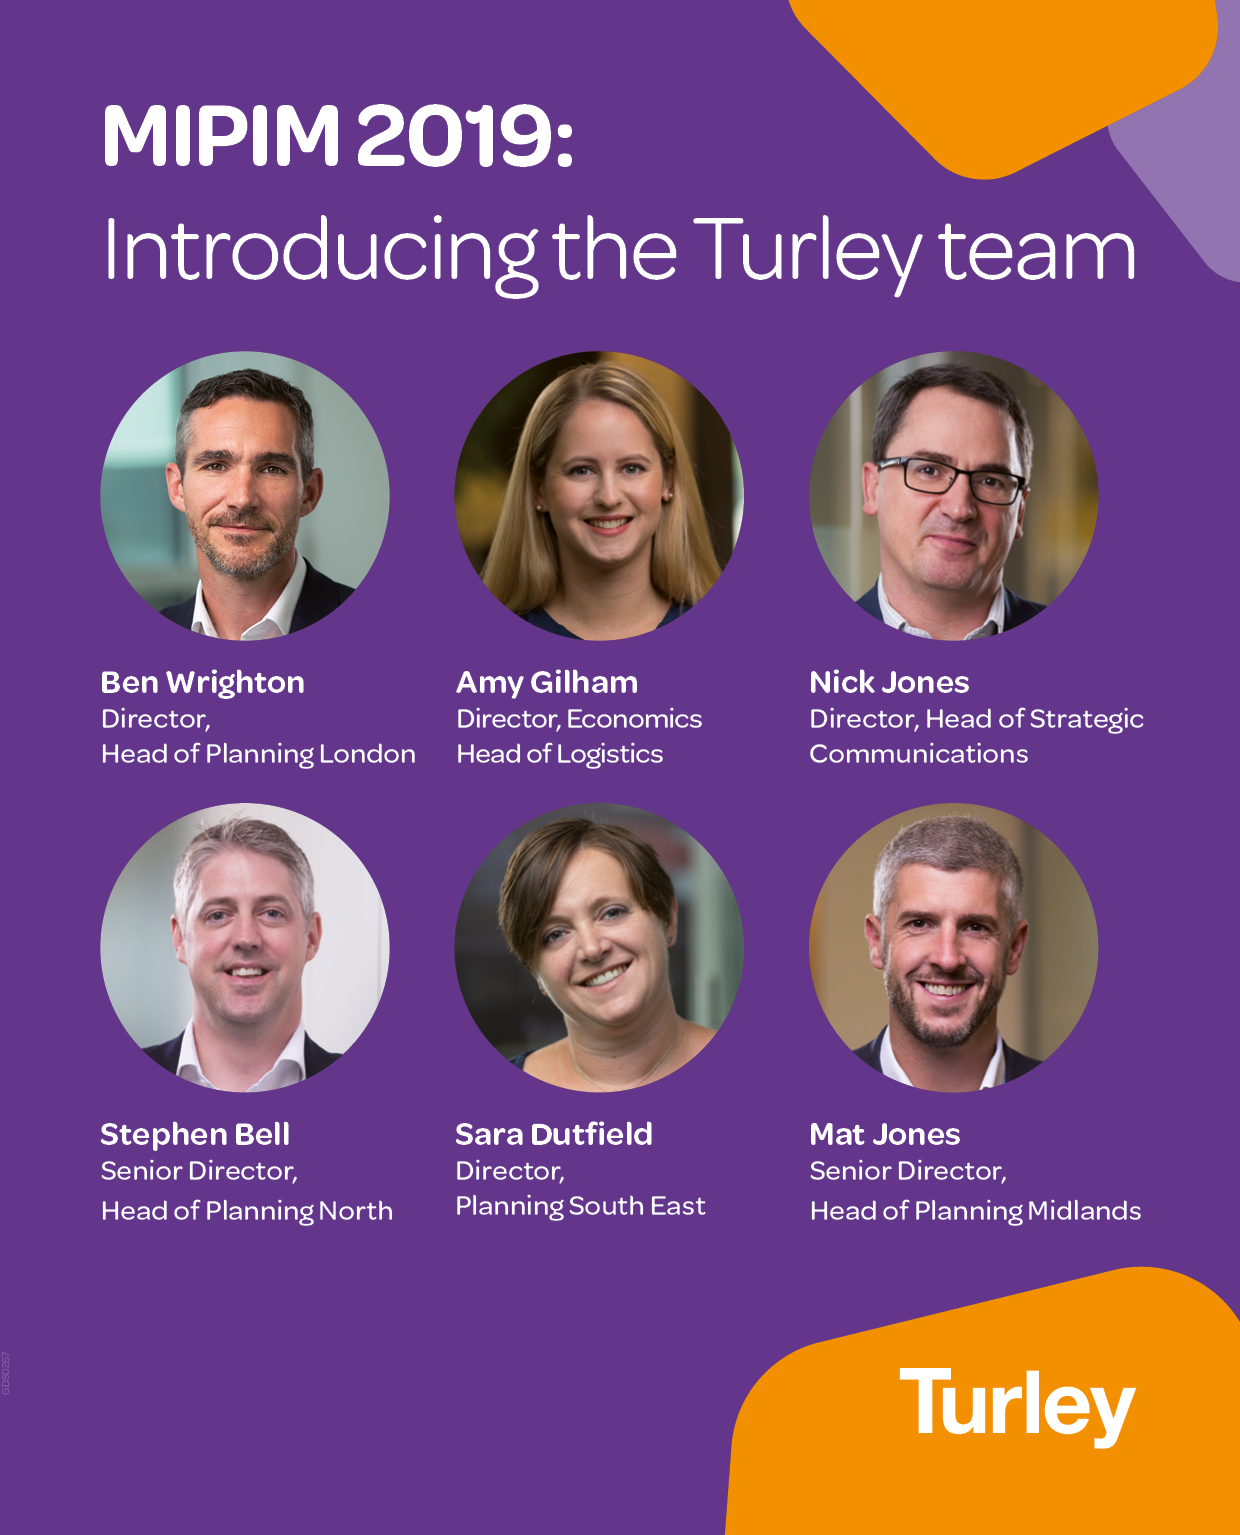 MIPIM 2019 - Meet the Turley team